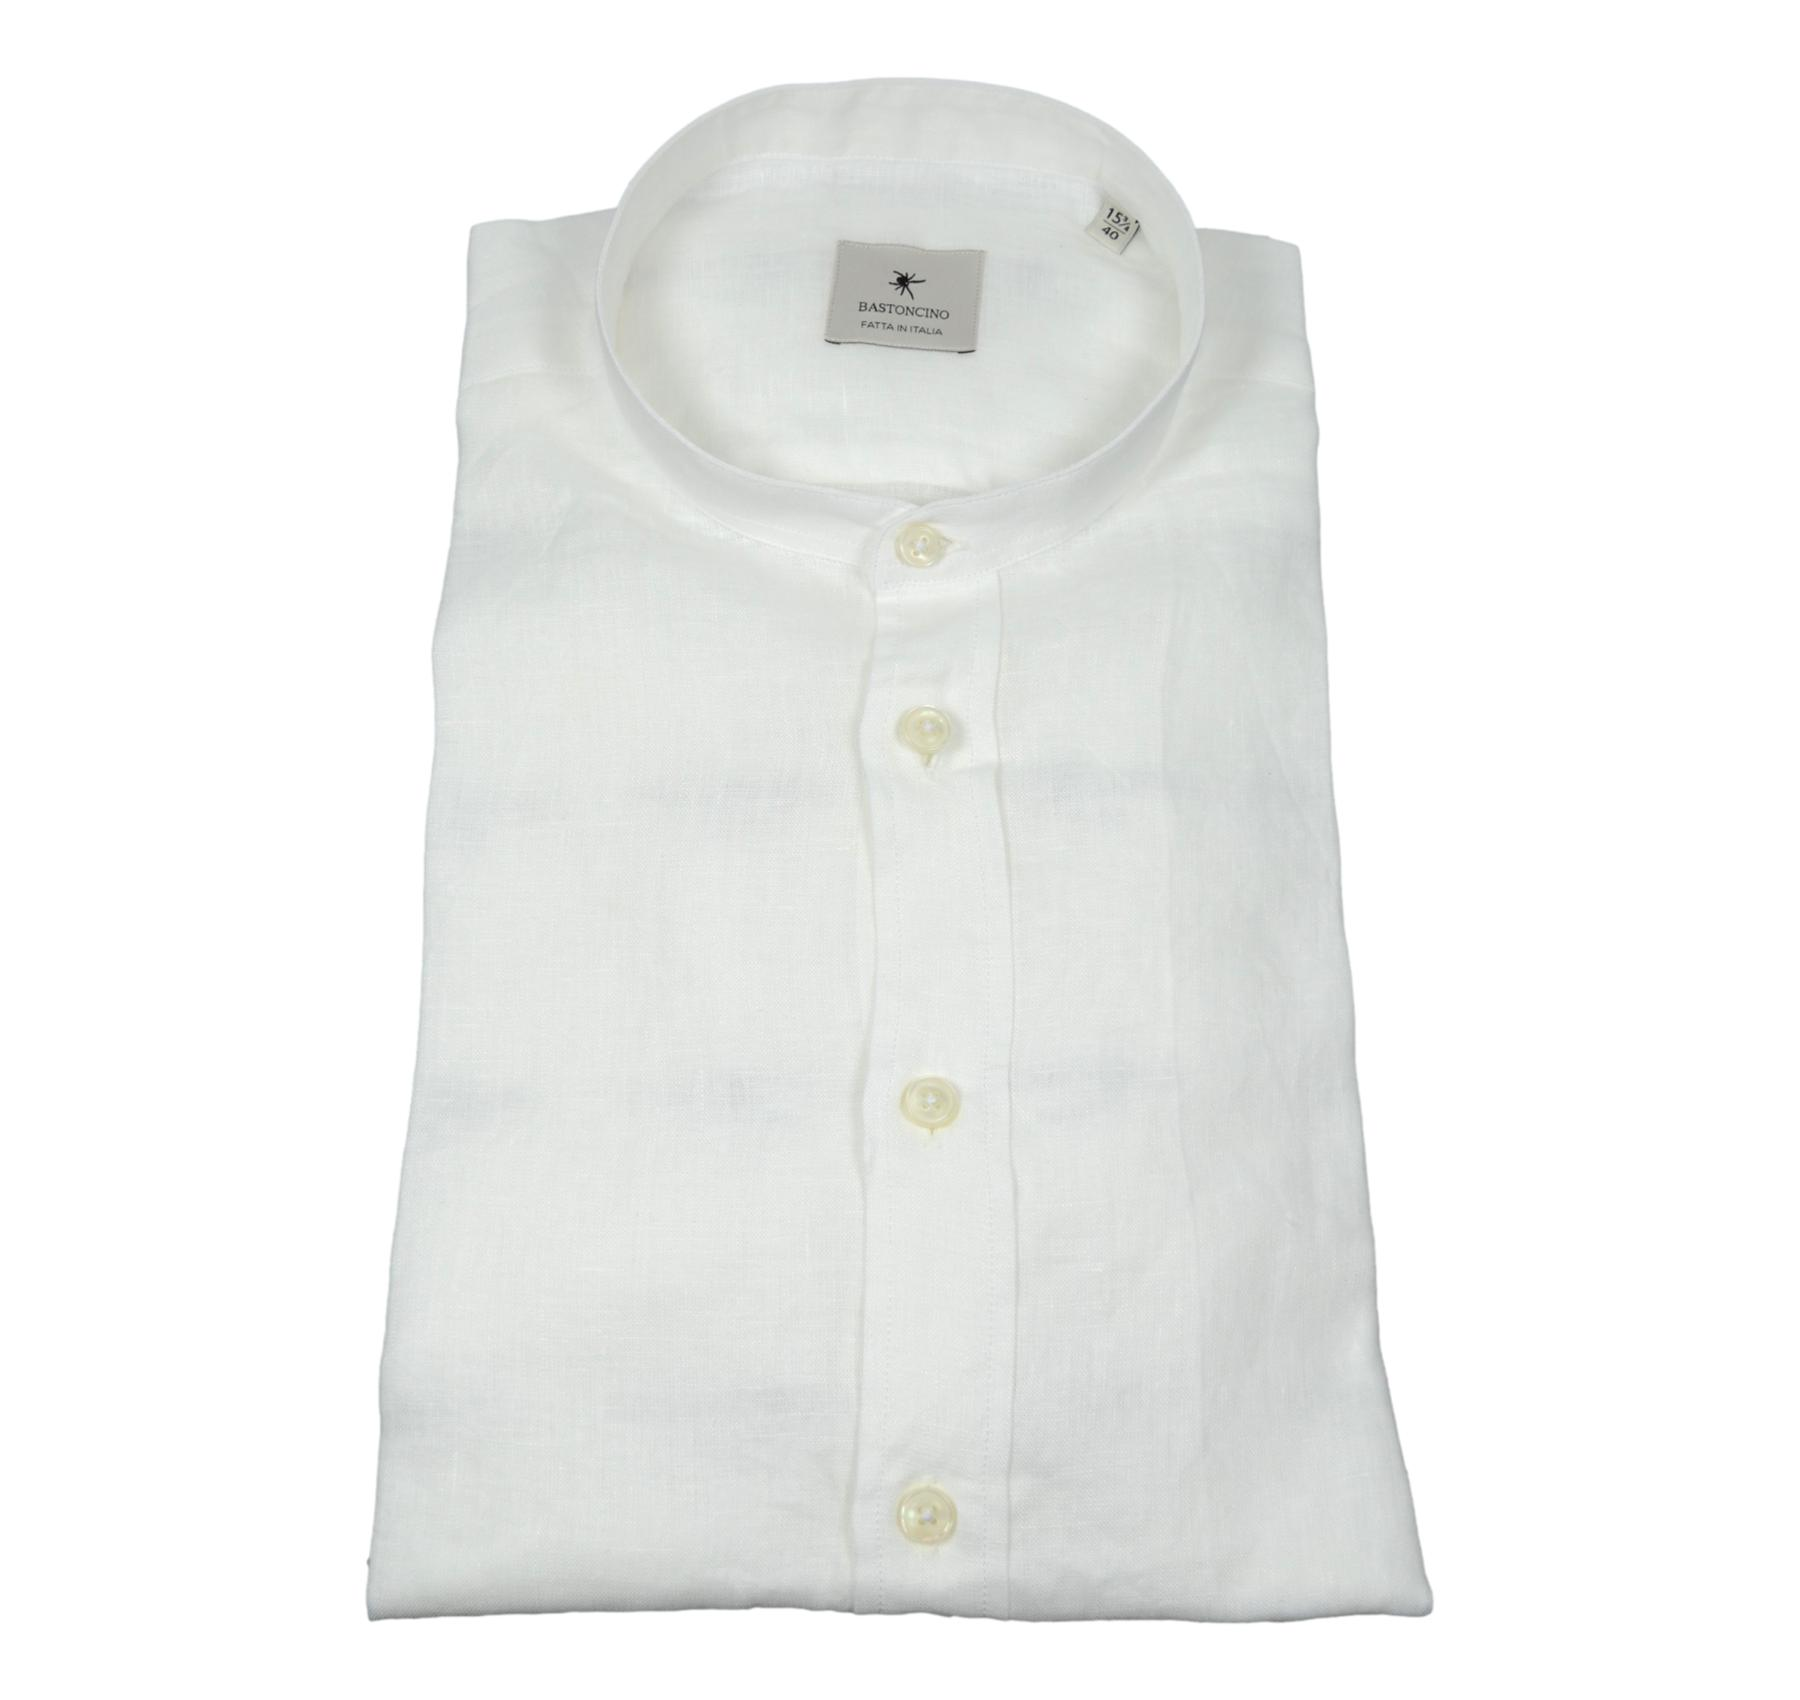 BASTONCINO CAMICIA UOMO SLIM FIT B050 PURO LINO BIANCO WASHED MADE IN ITALY